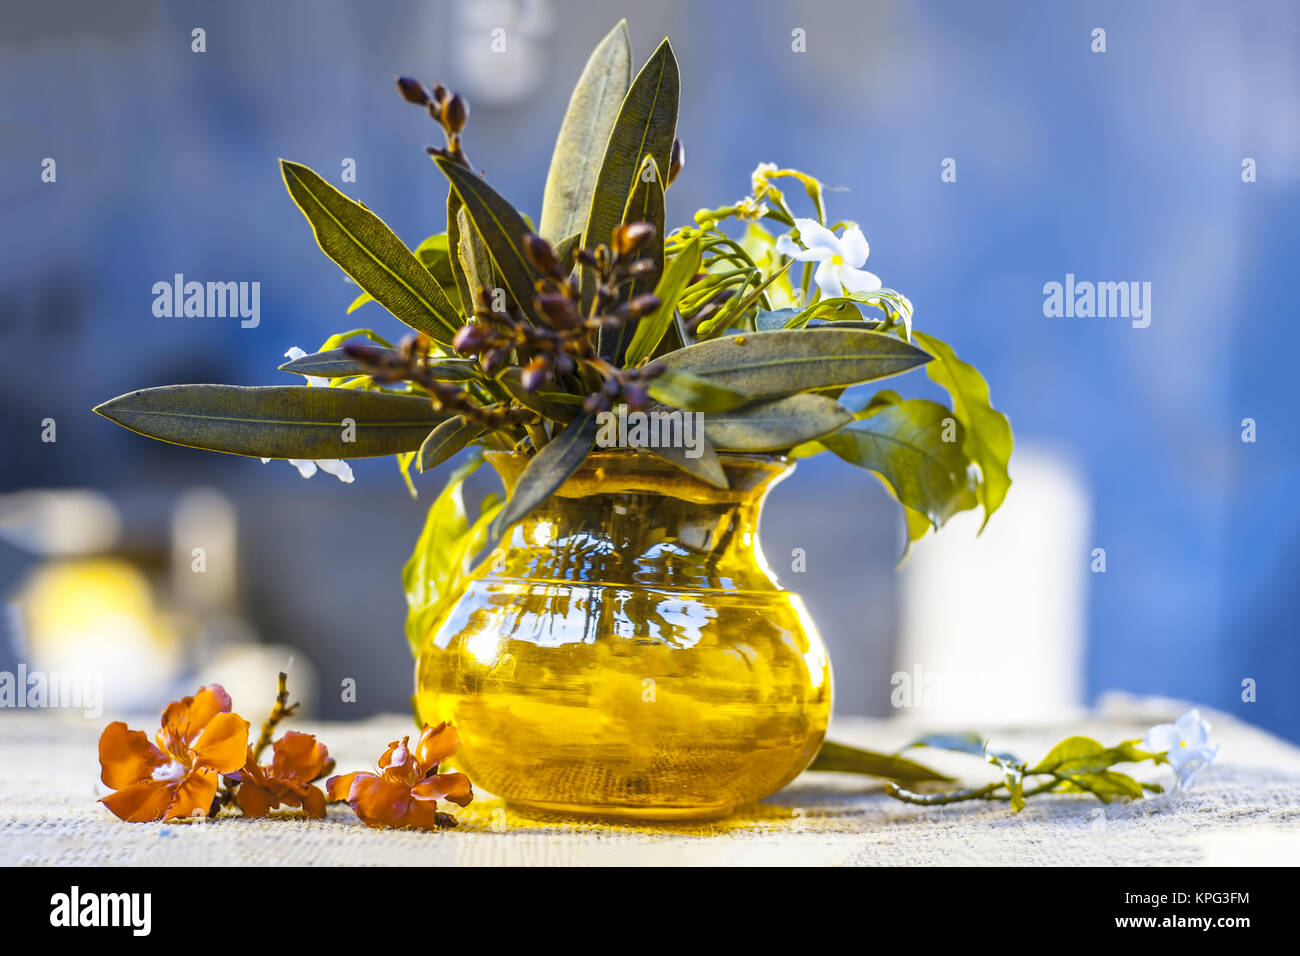 White Colored Aromatic Flower In A Broken Yellow Vase Stock Photo